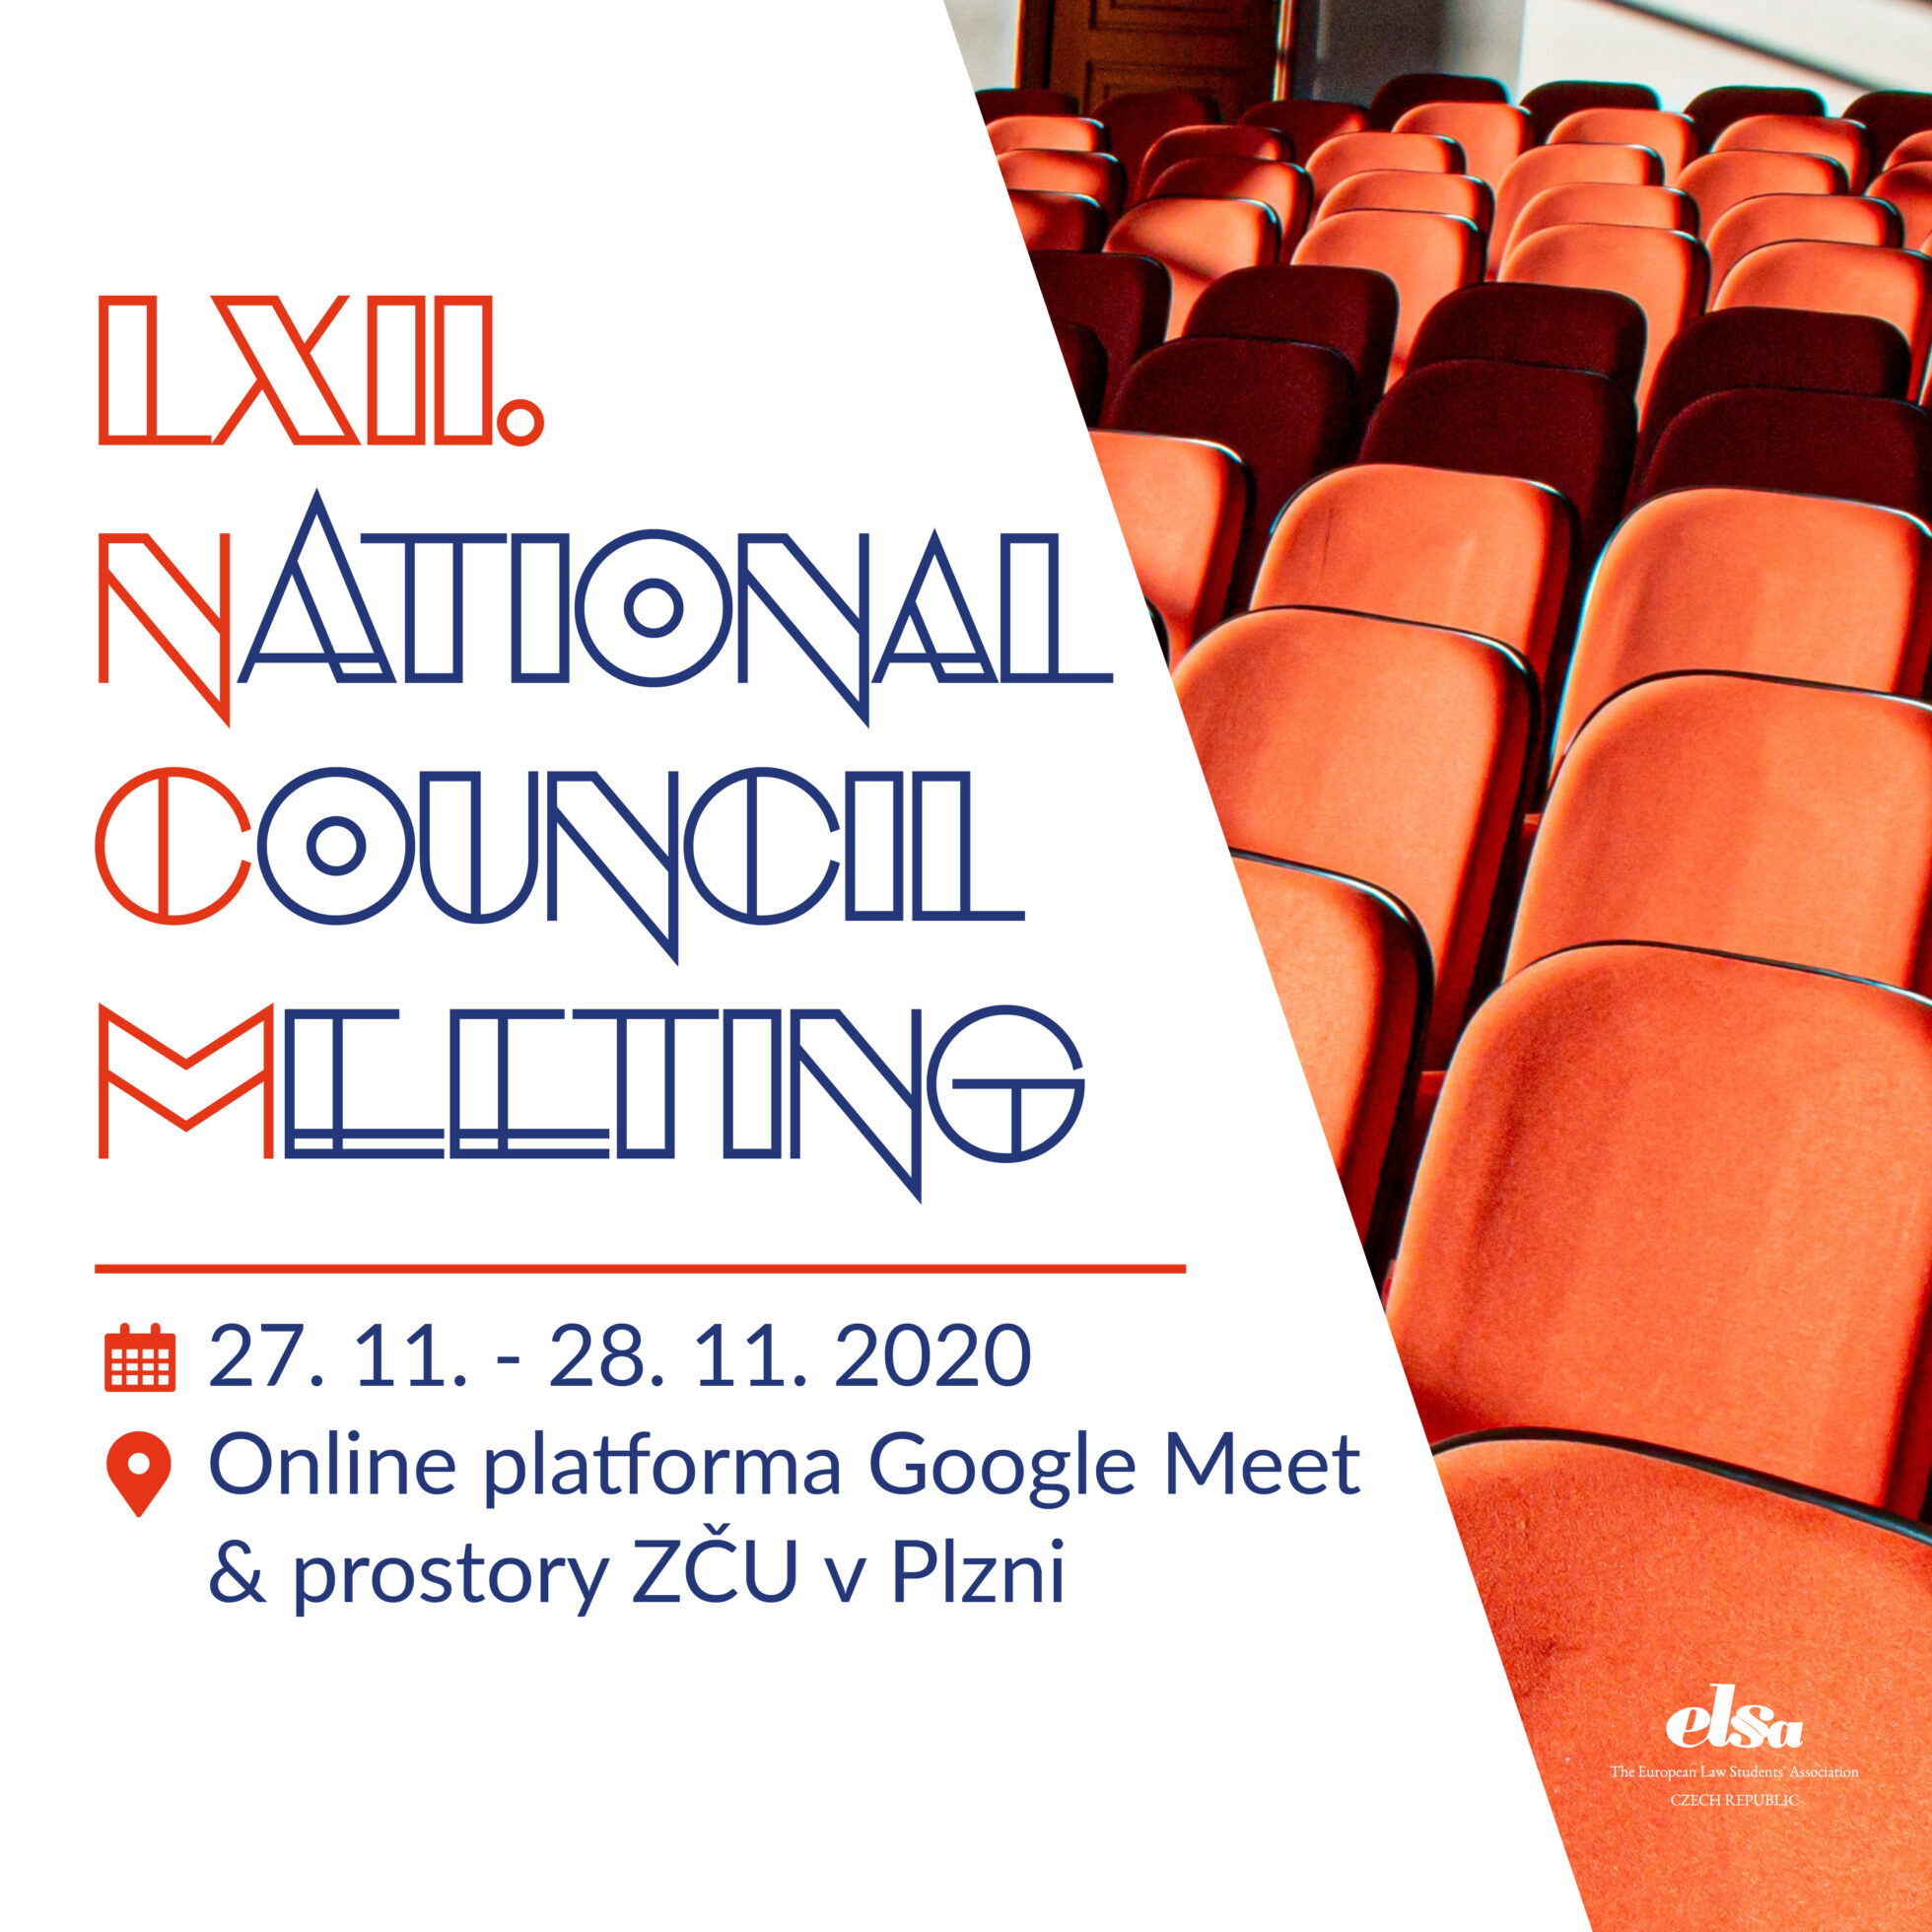 LXII. National Council Meeting